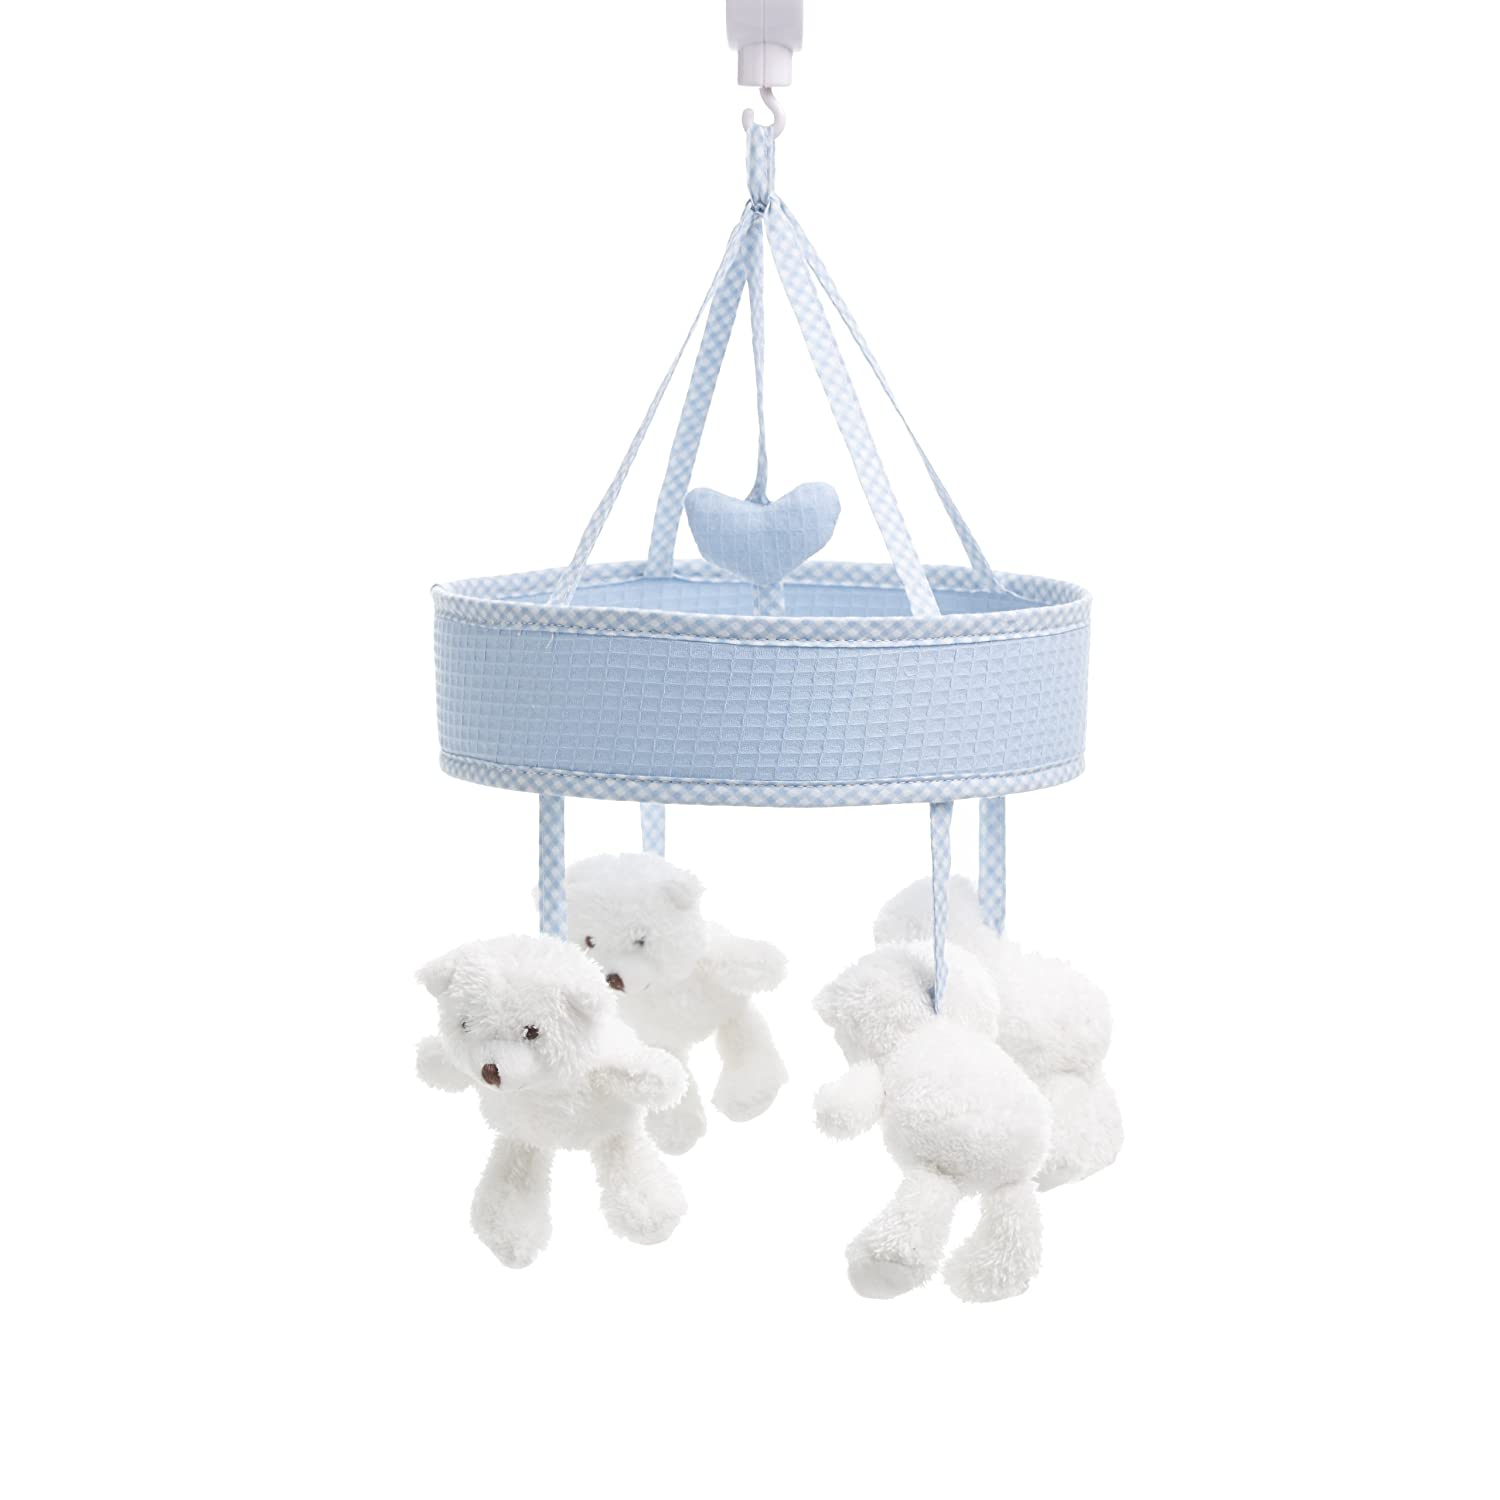 Baby bed mobile - Baby Bed Mobile 39